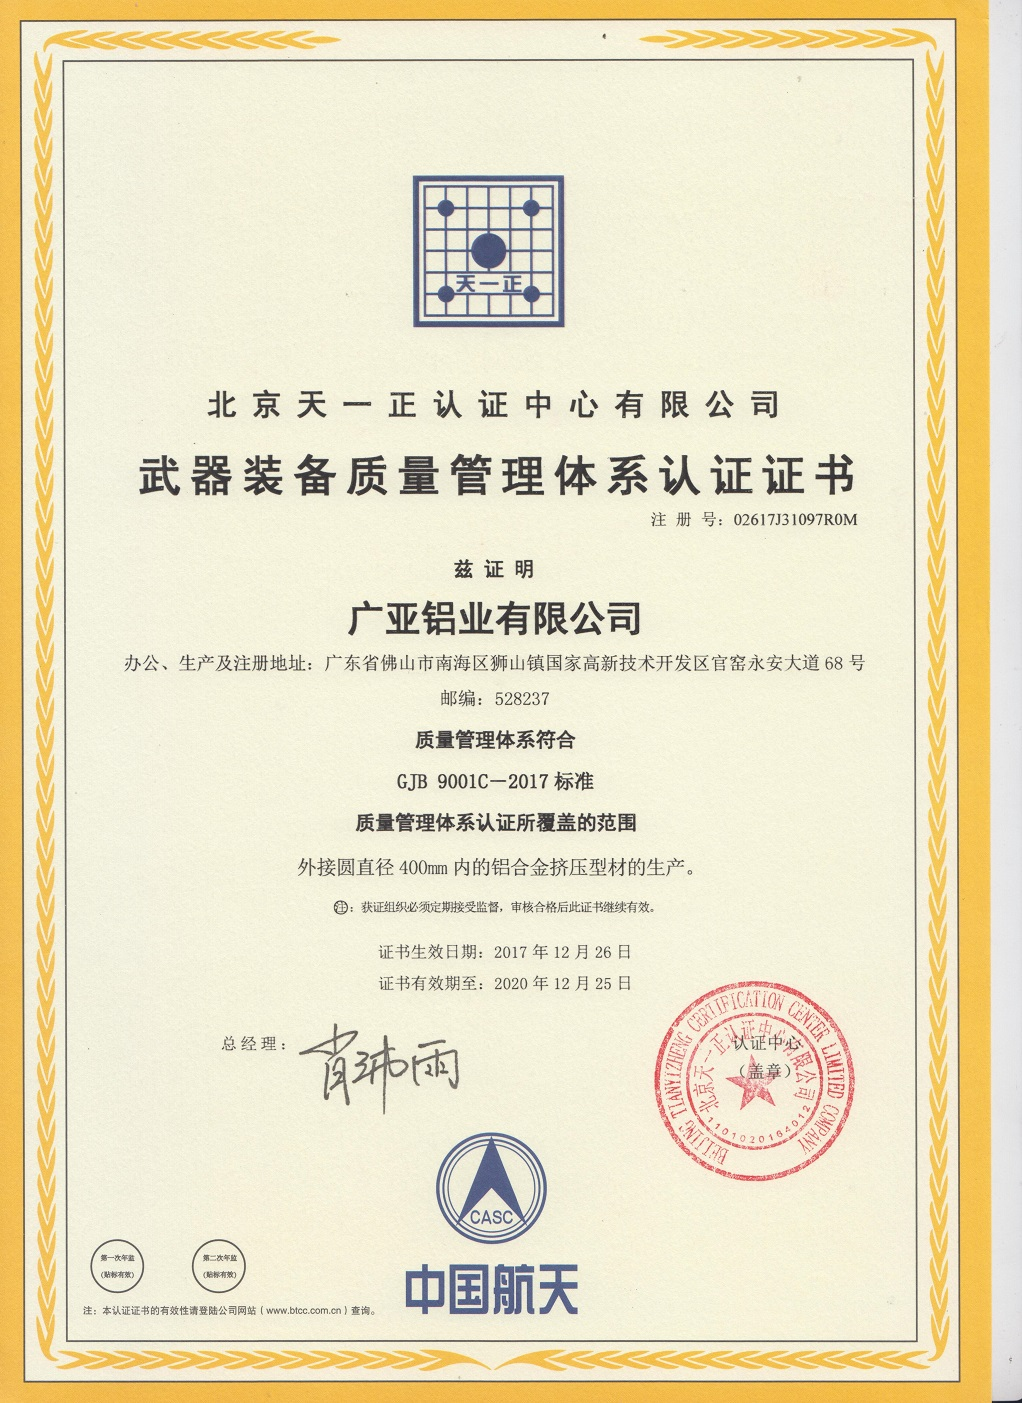 Weapon equipment quality management system certification